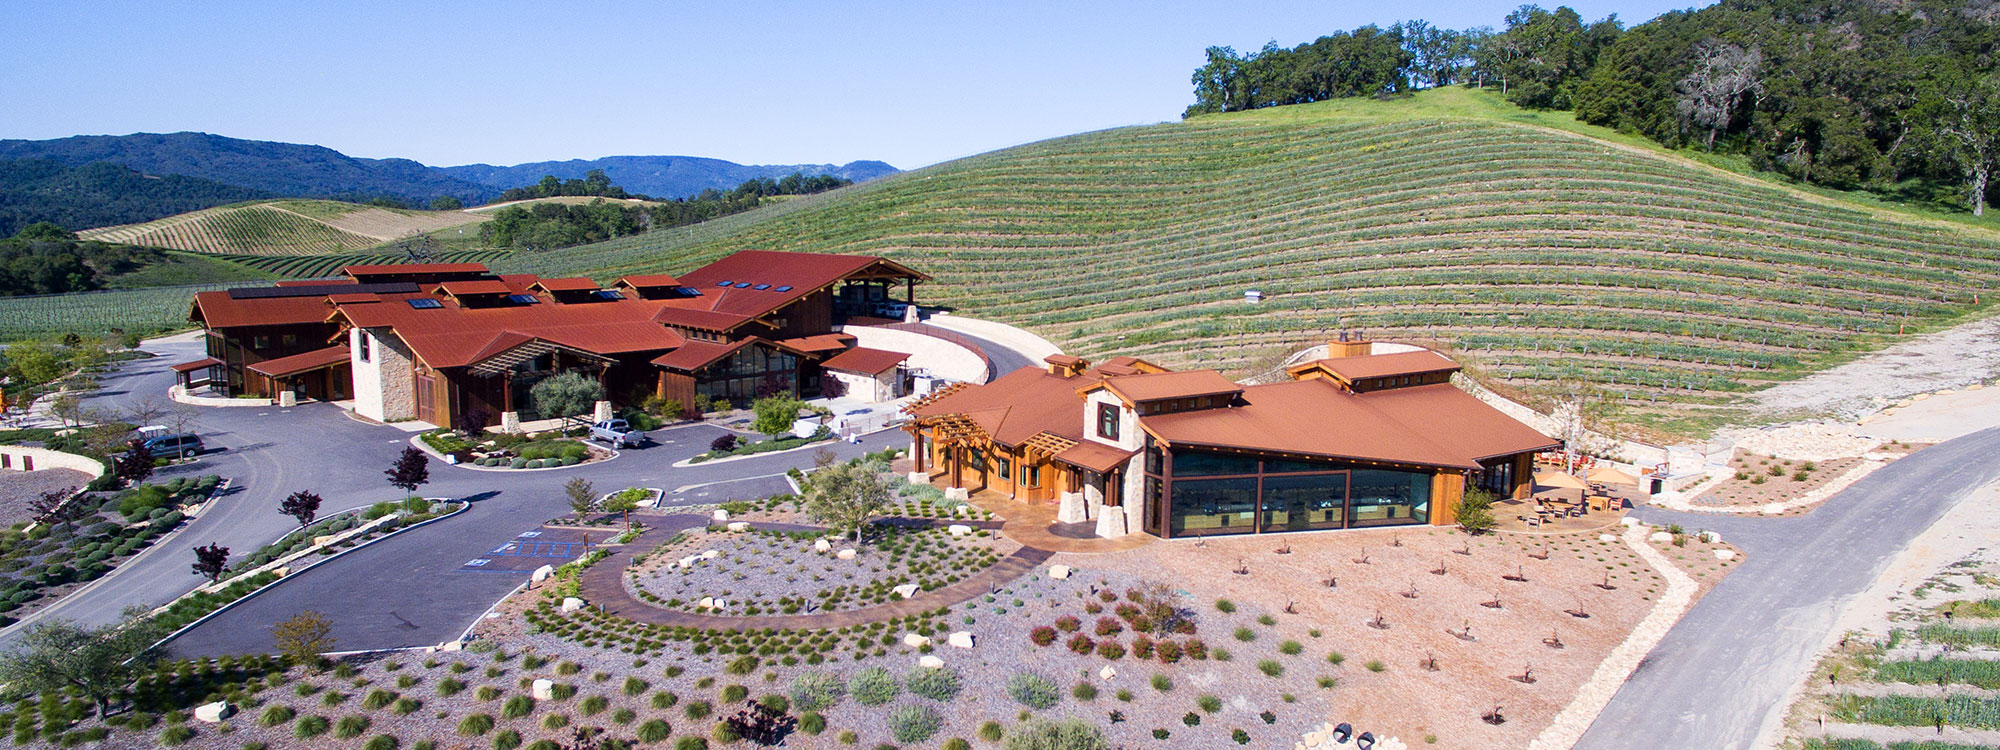 Winery Caves Contractor and Builder - JW Design & Construction